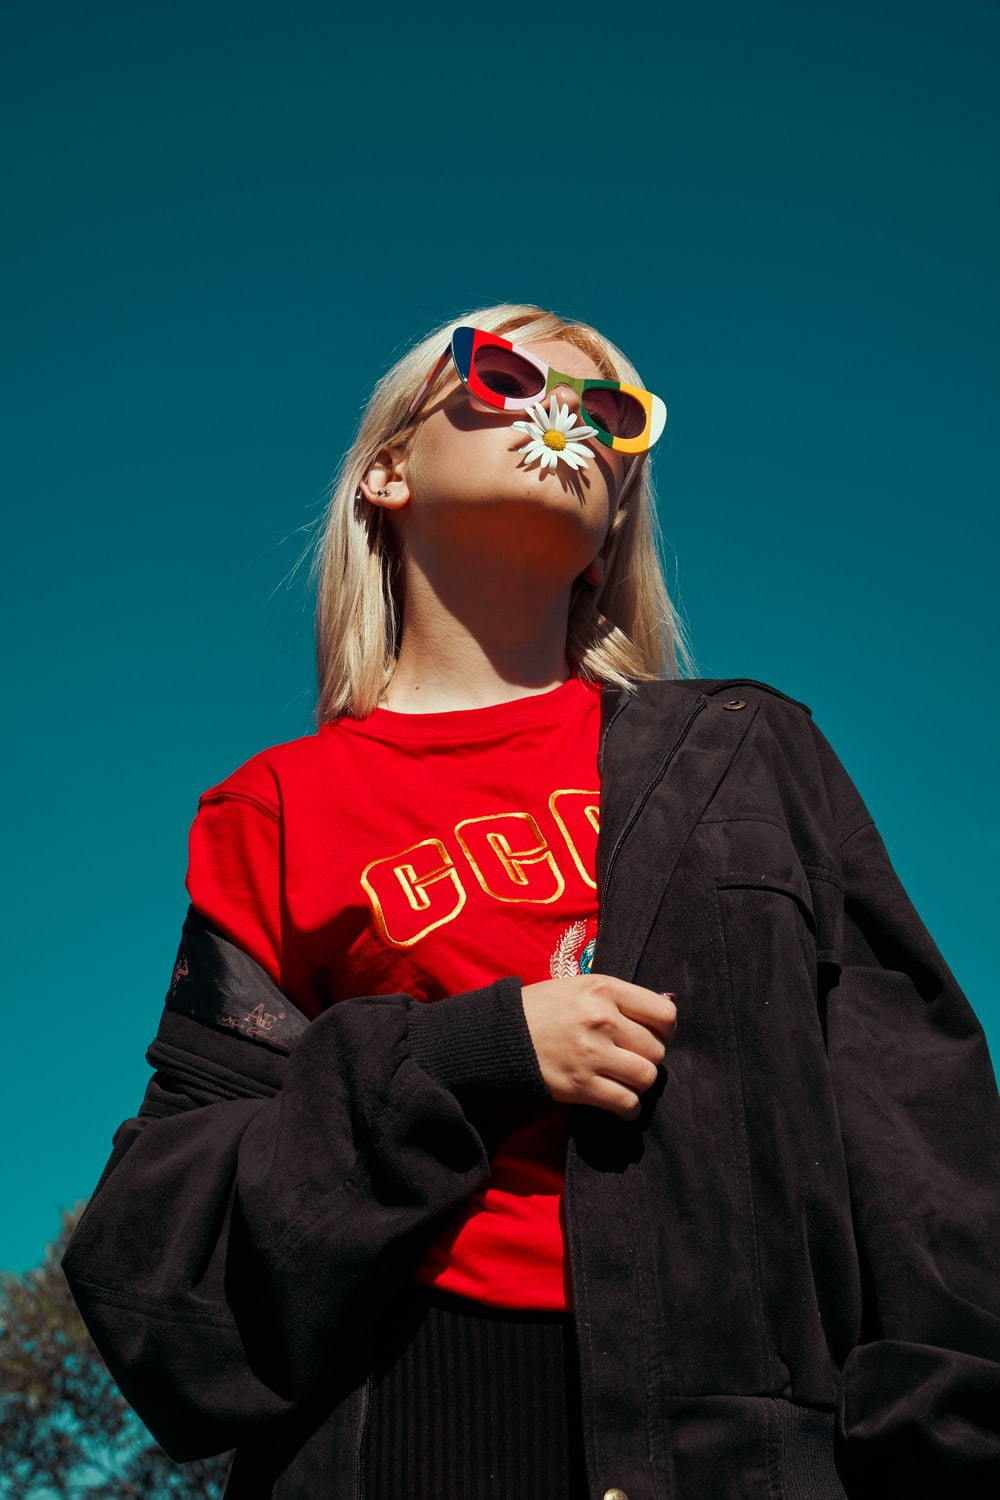 woman with sunglasses standing outdoor during daytime